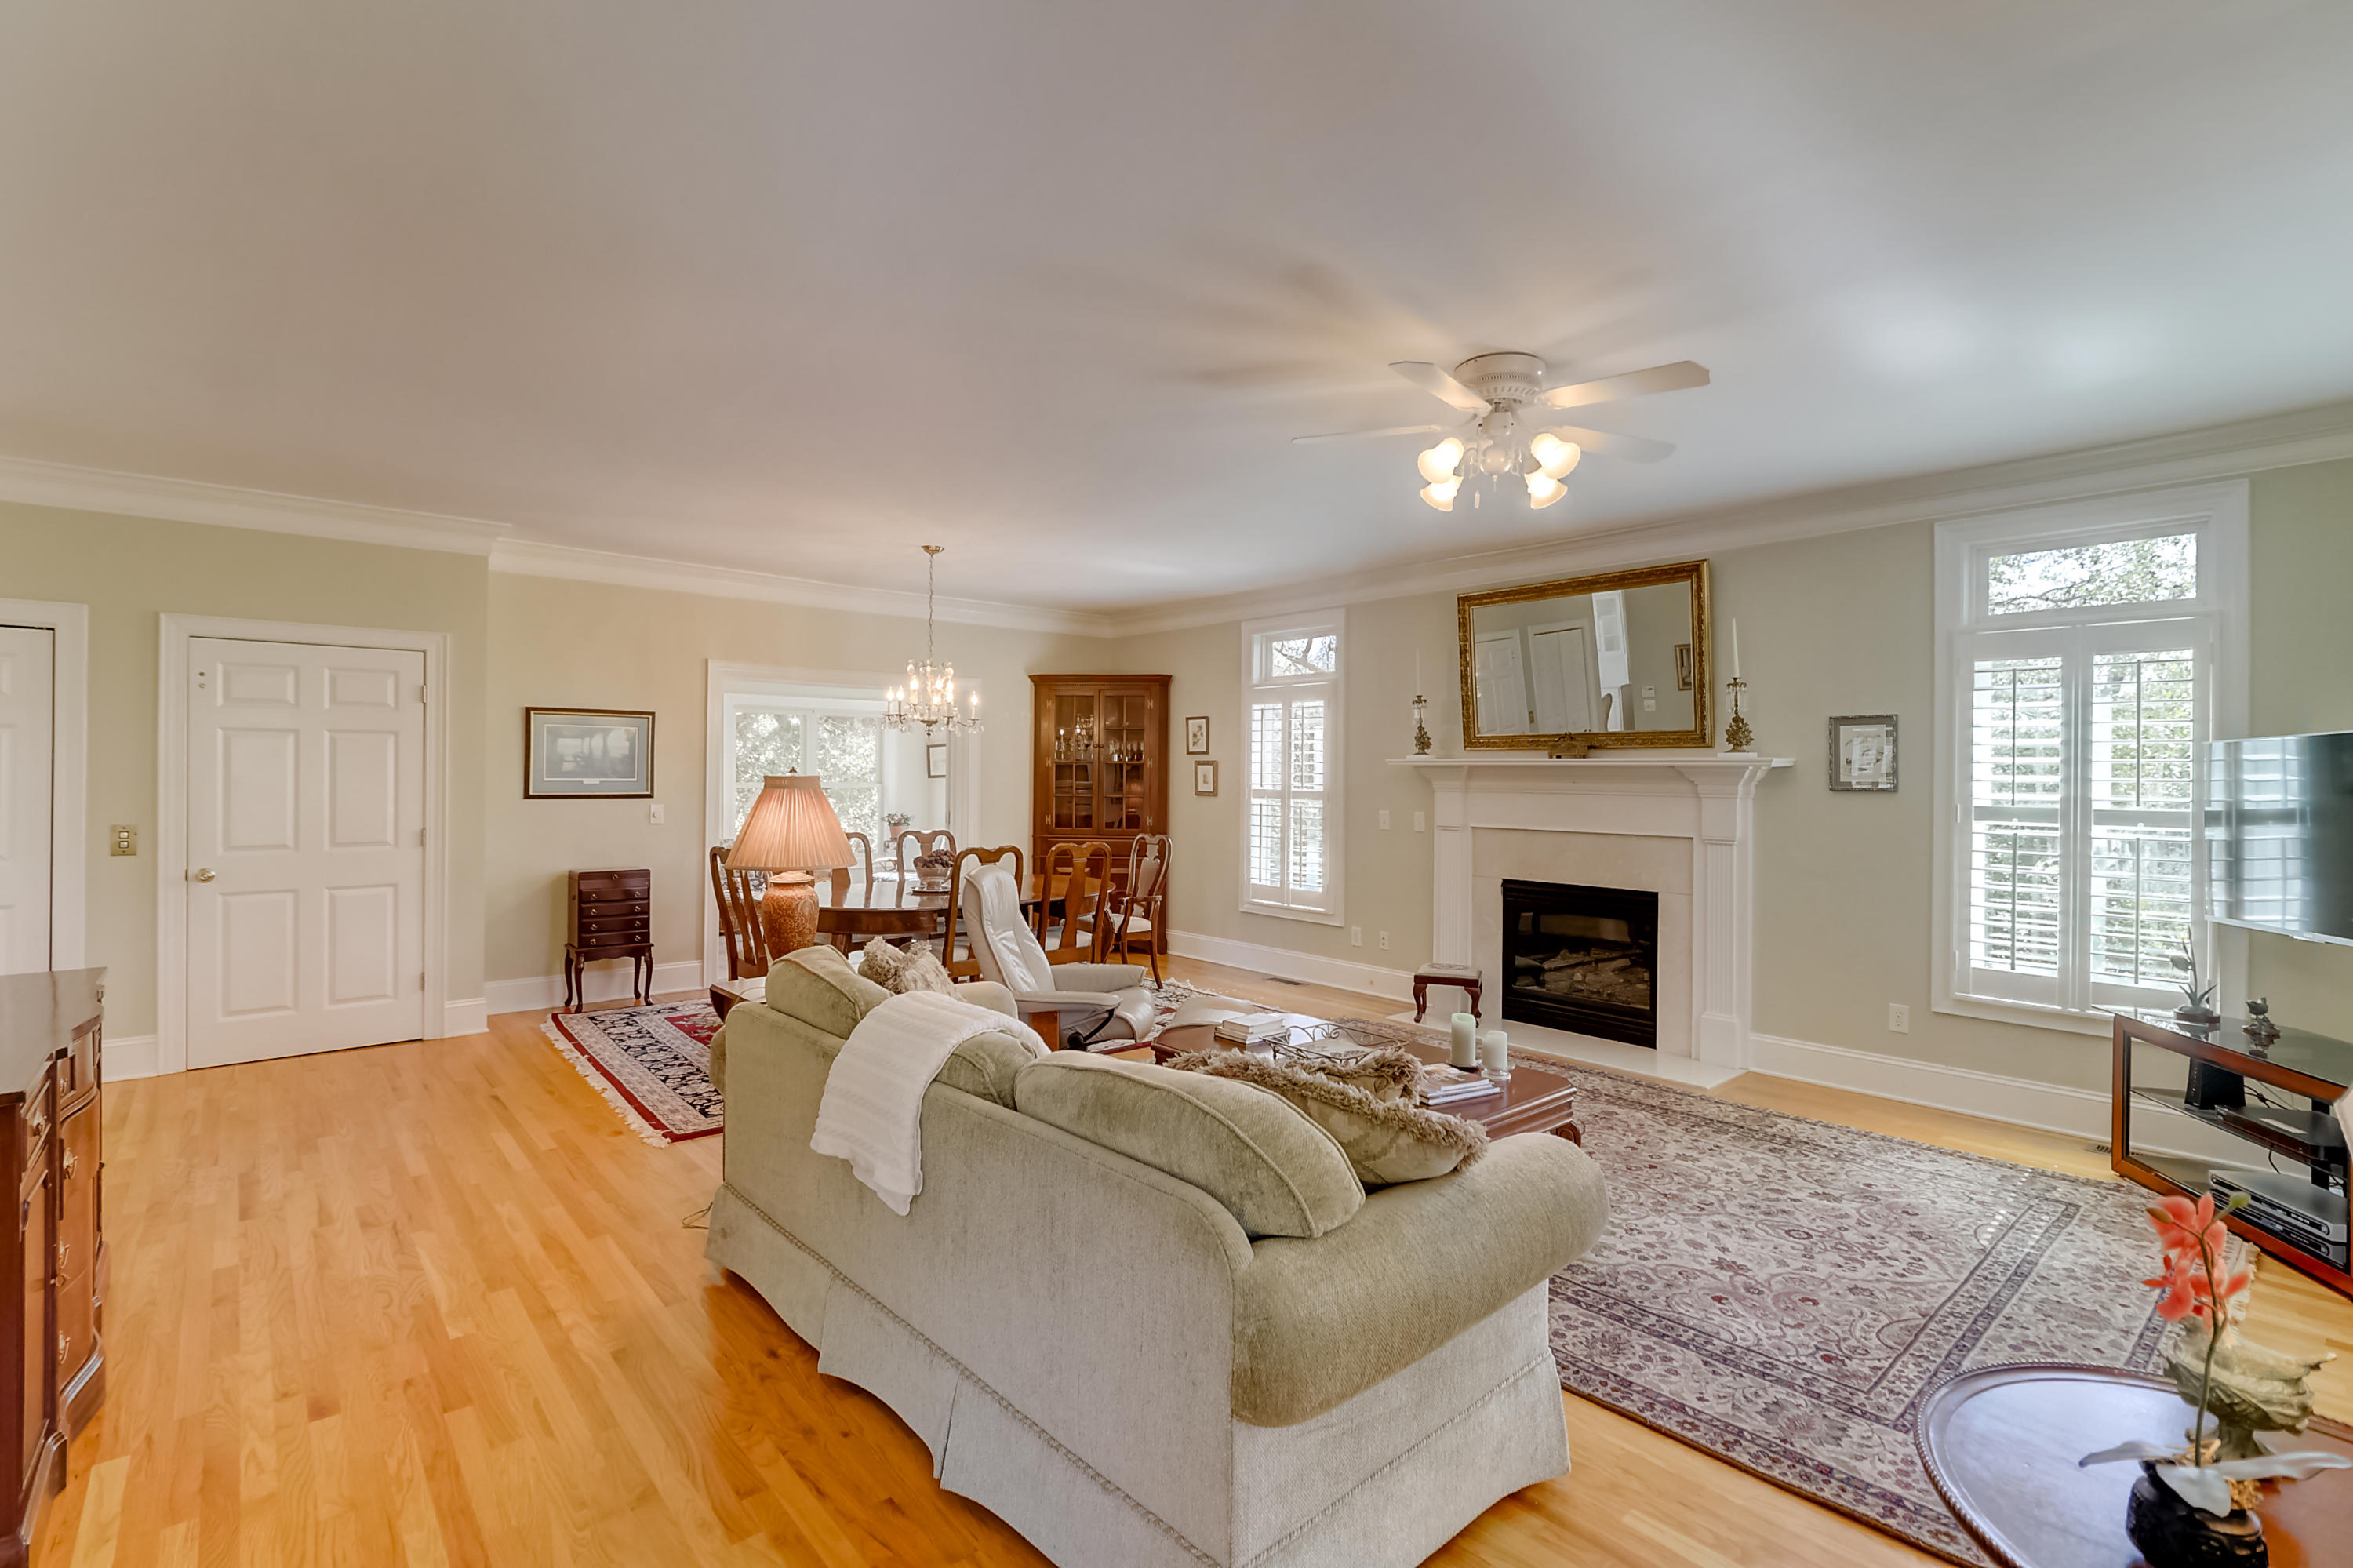 Stratton Place Homes For Sale - 1494 Stratton, Mount Pleasant, SC - 71